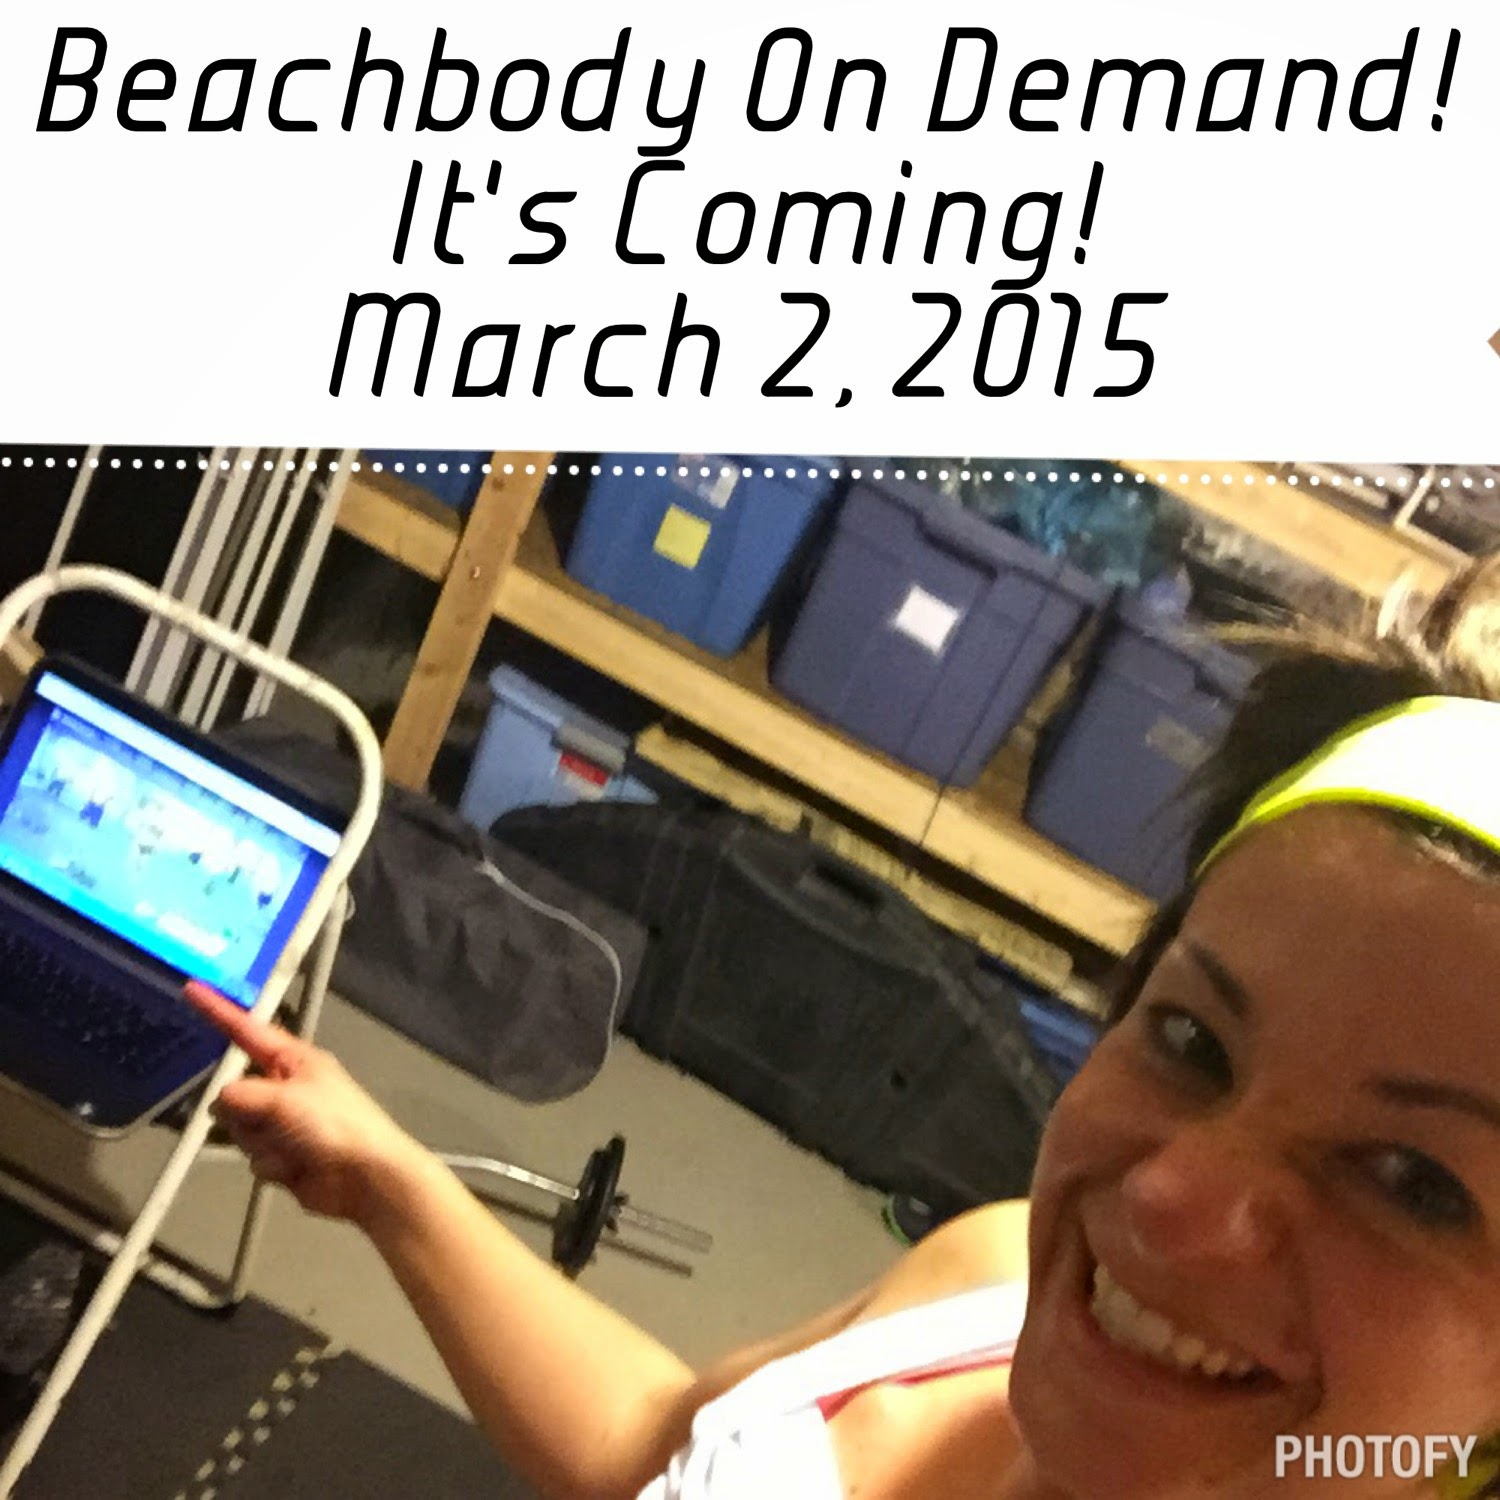 what is beachbody on demand, how do I get beachbody on demand